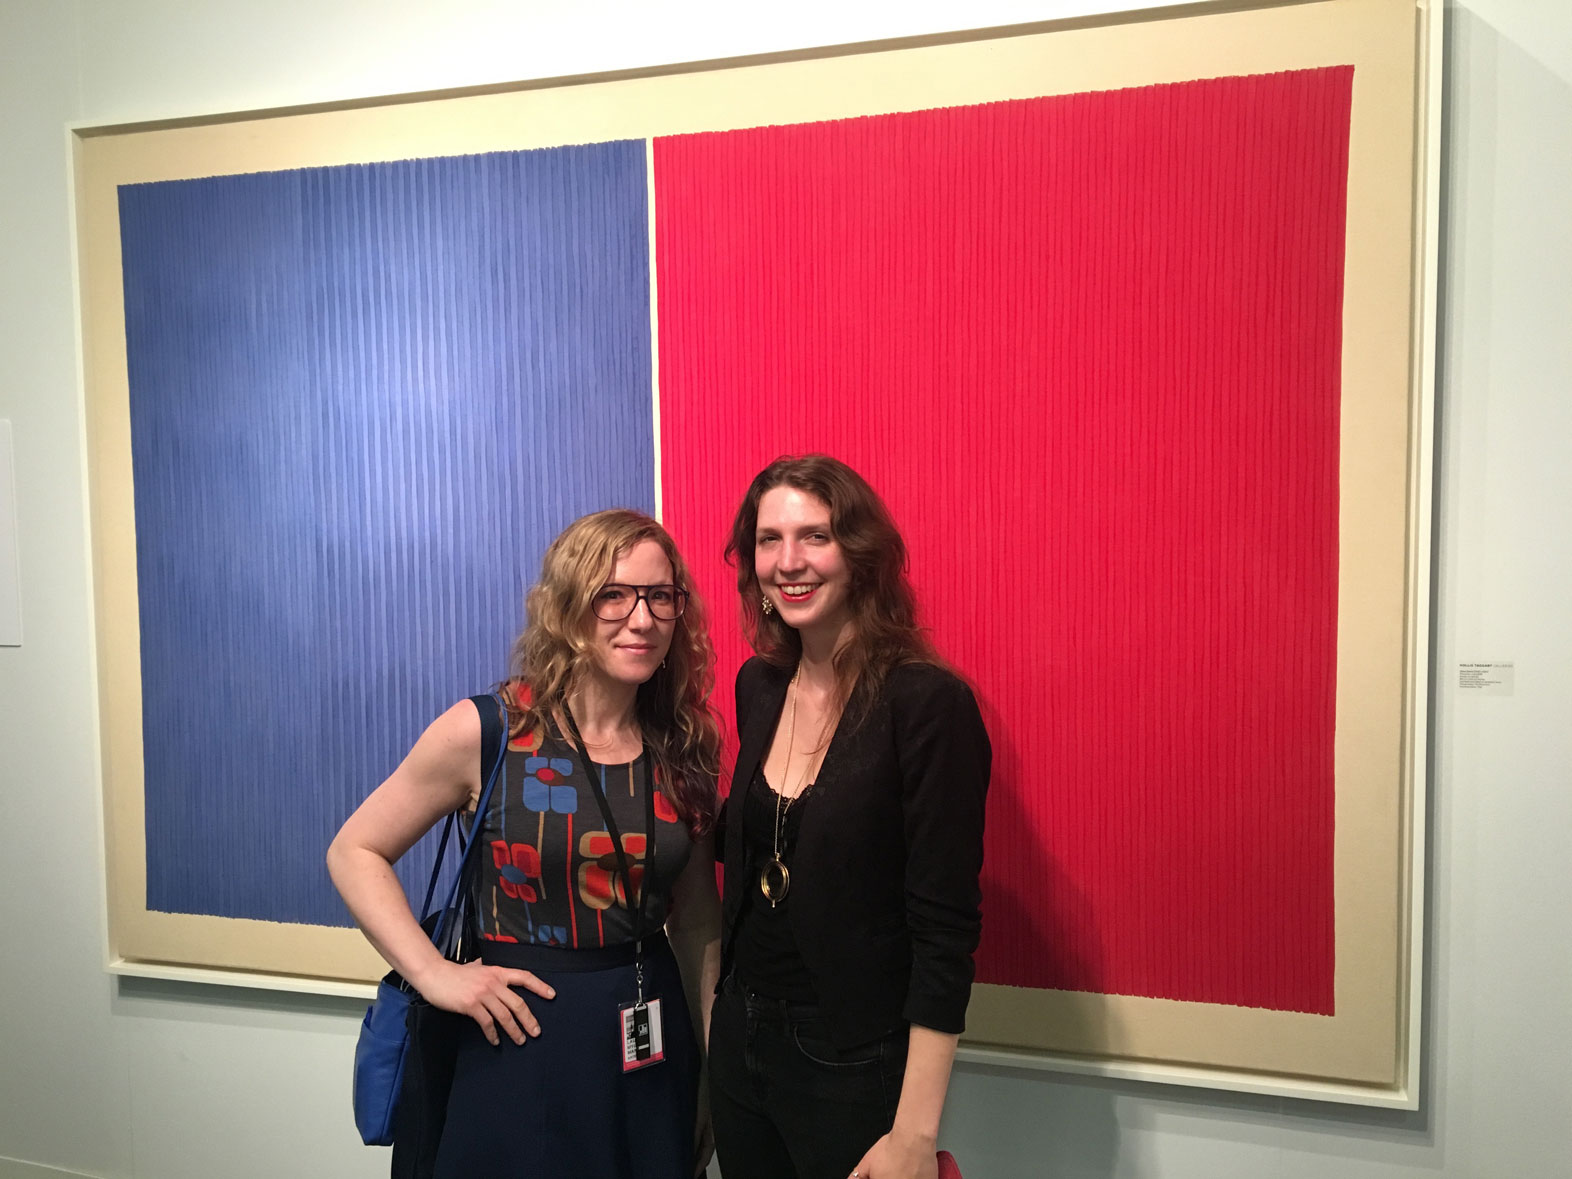 T he author with artist L. Mylott Manning in front of : Gene Davis, Pinnochio, 1978, Acrylic on canvas, Hollis Taggart Galleries, New York, NY